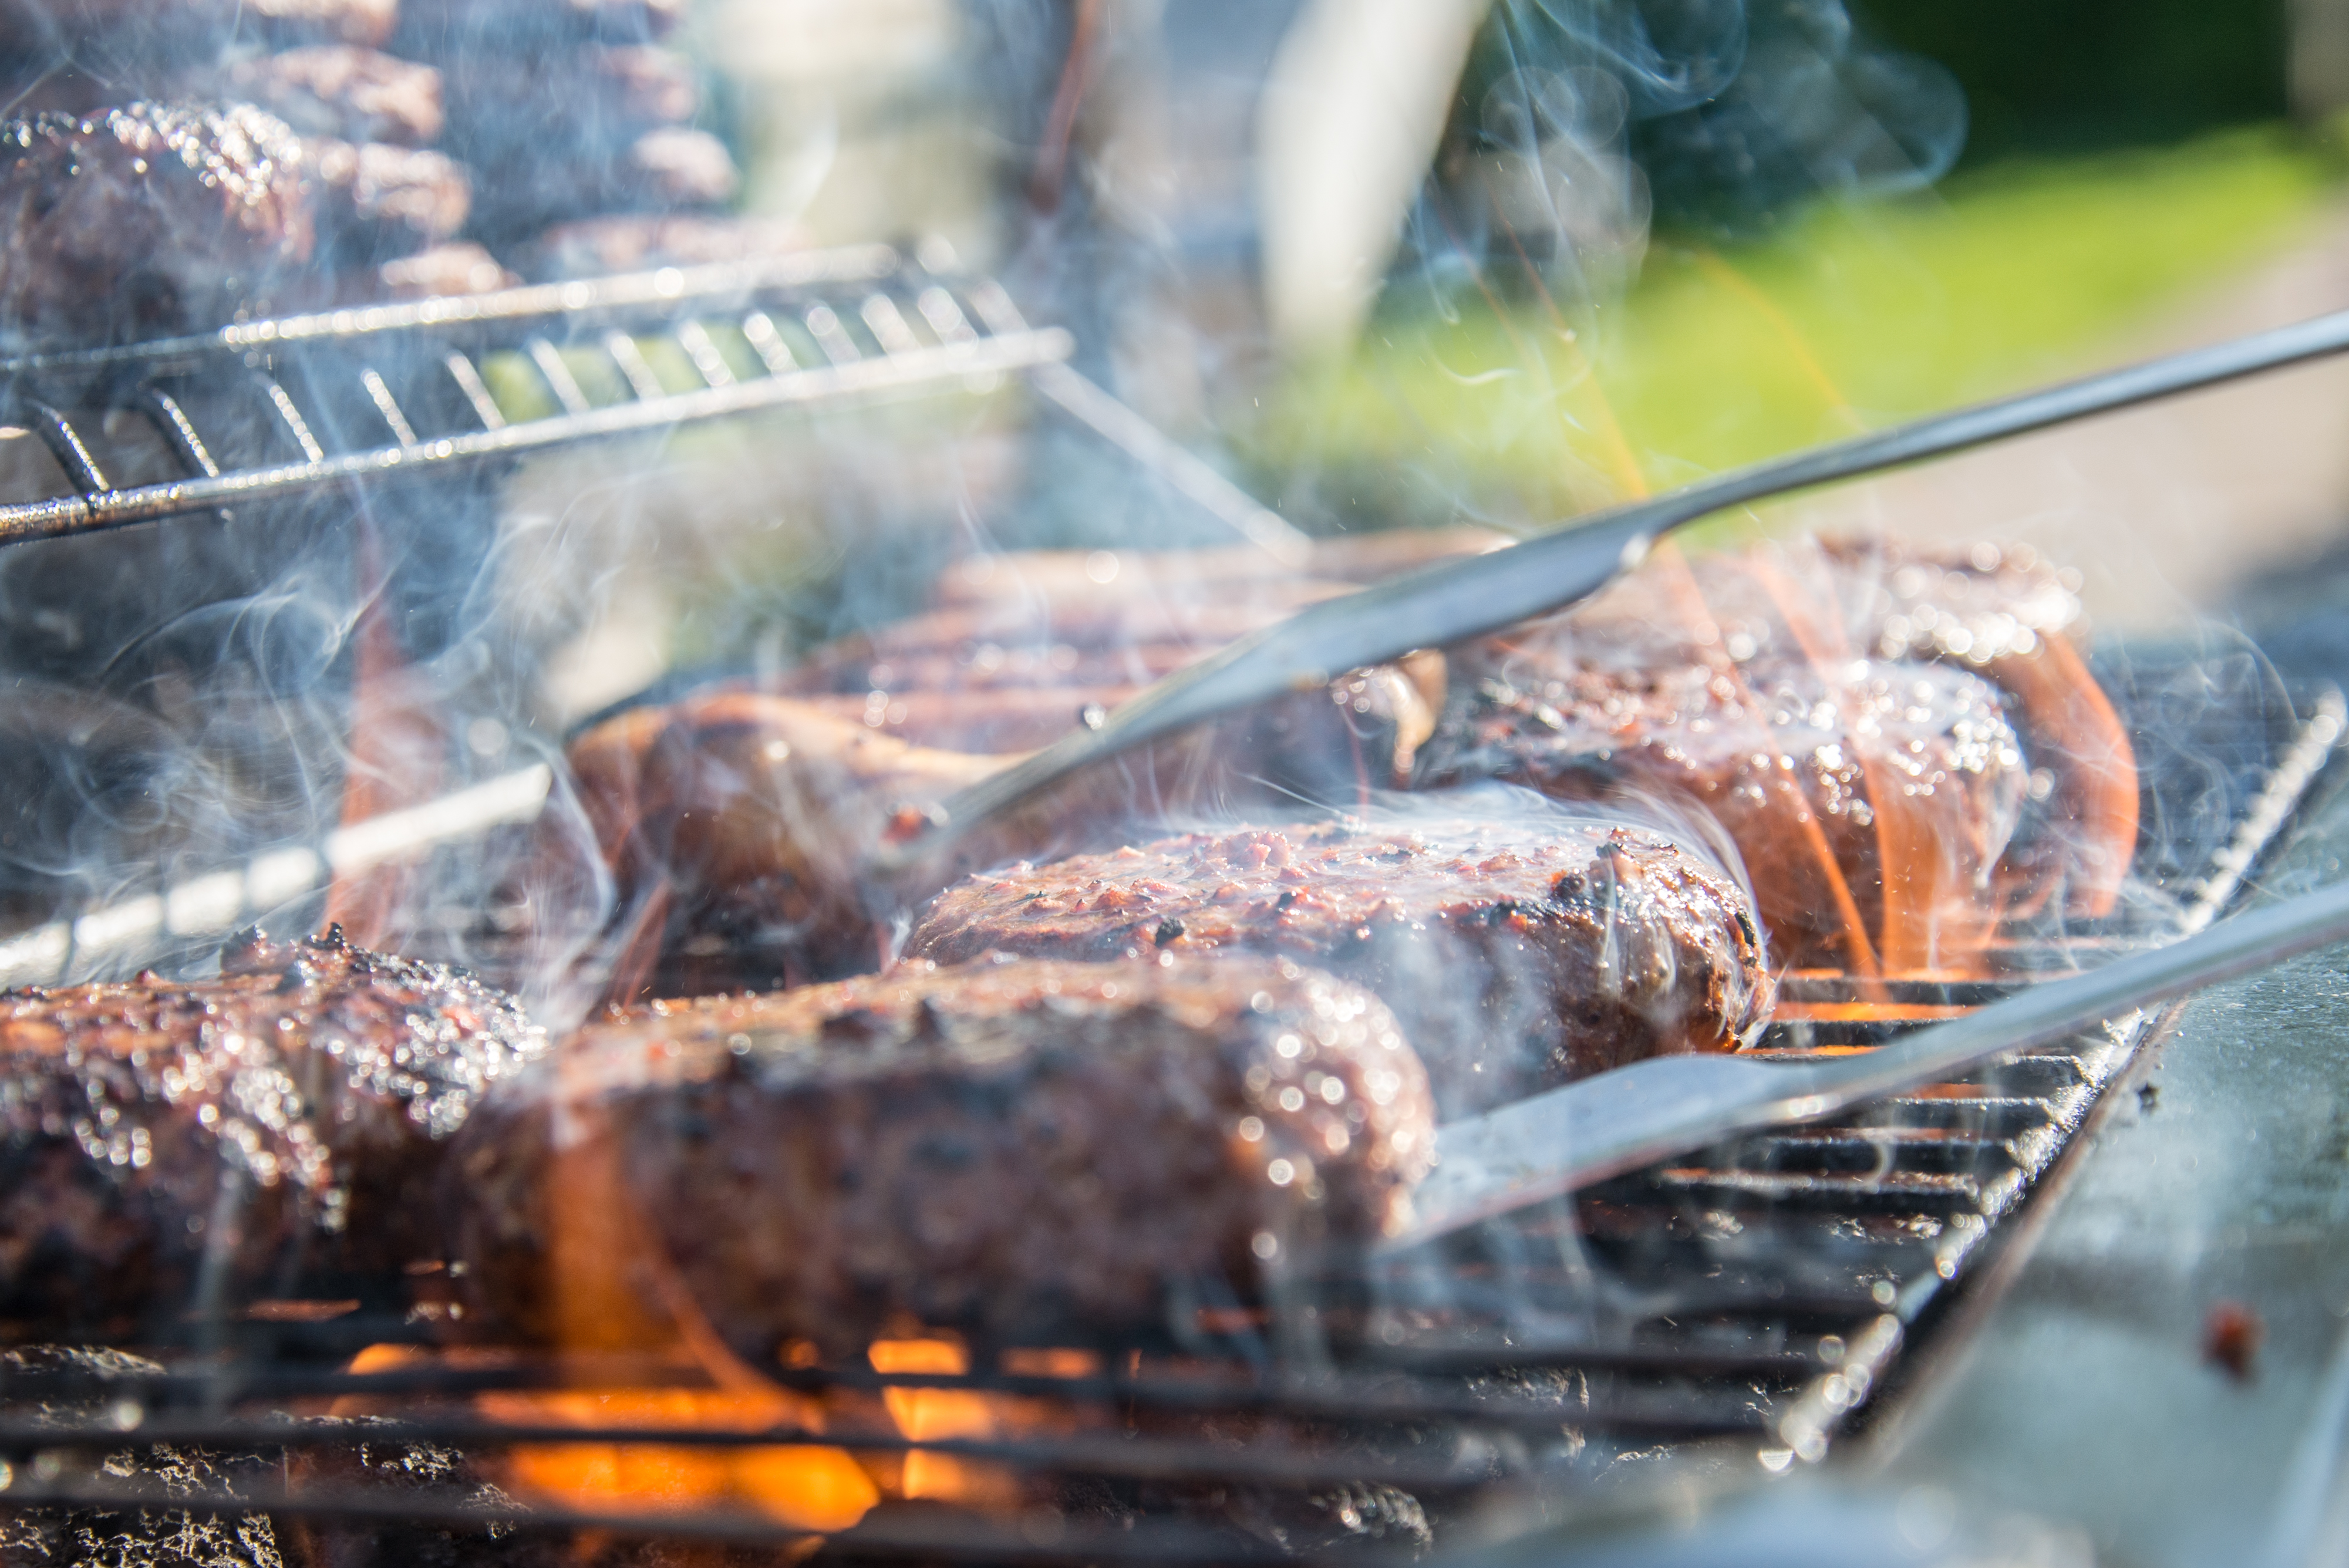 Close Photography of Grilled Meat on Griddle